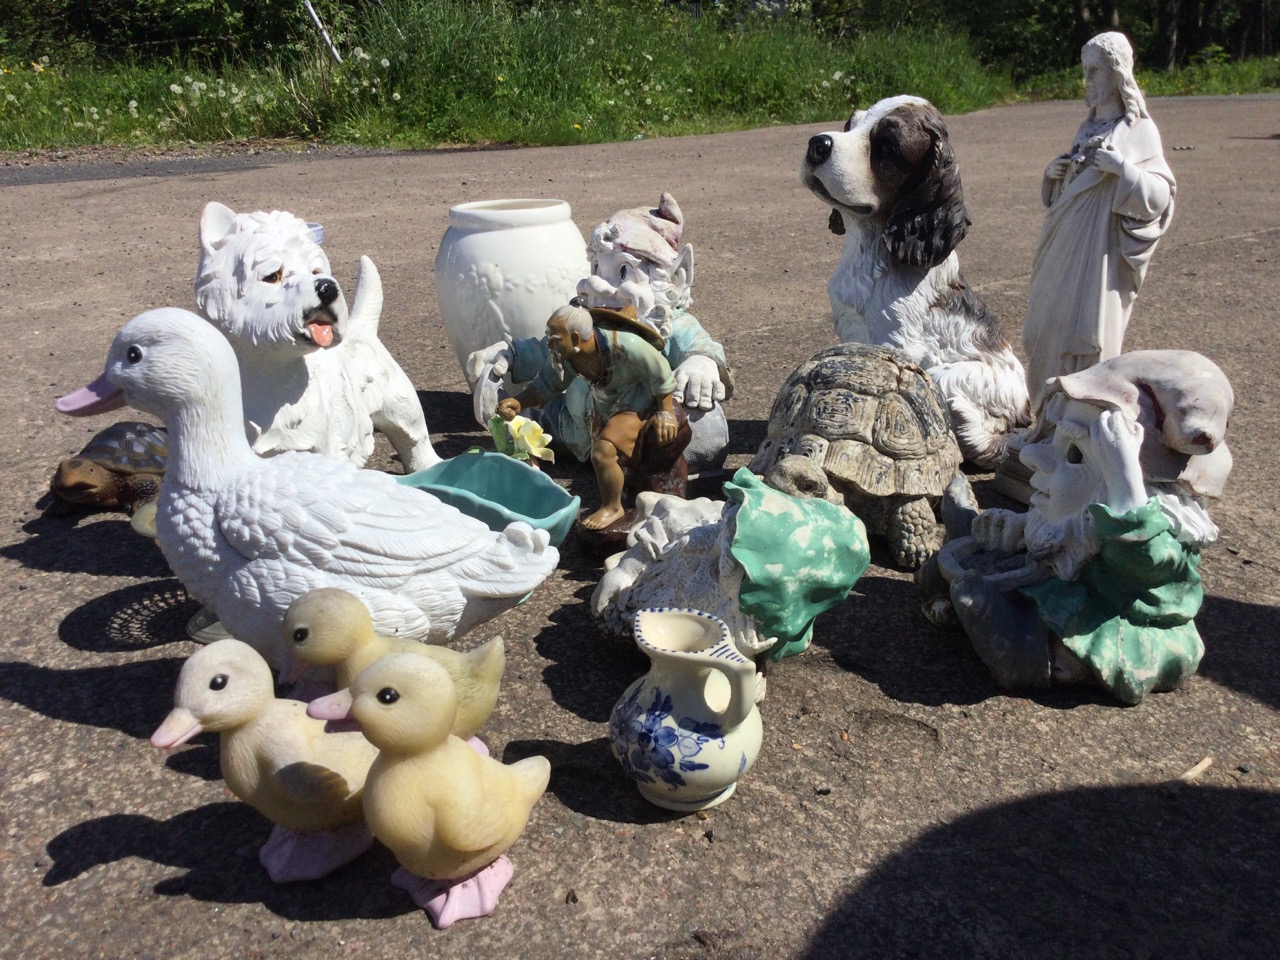 Miscellaneous ornaments including gnomes, vases, a tortoise, ducks, a Chinese stoneware figure, a - Image 3 of 3